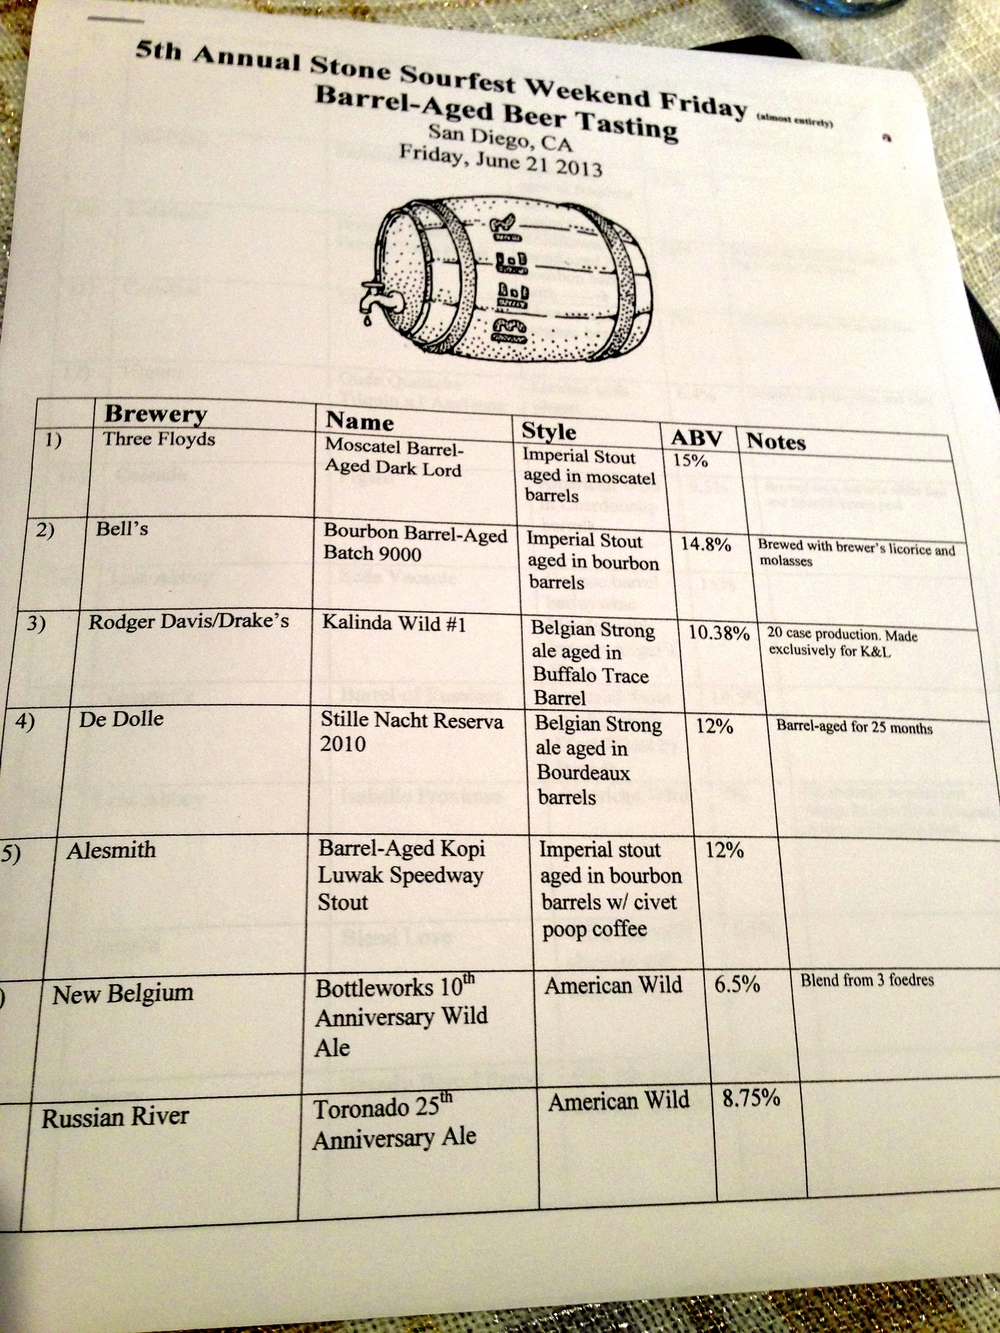 The front page of the Epic Bottle Share list.